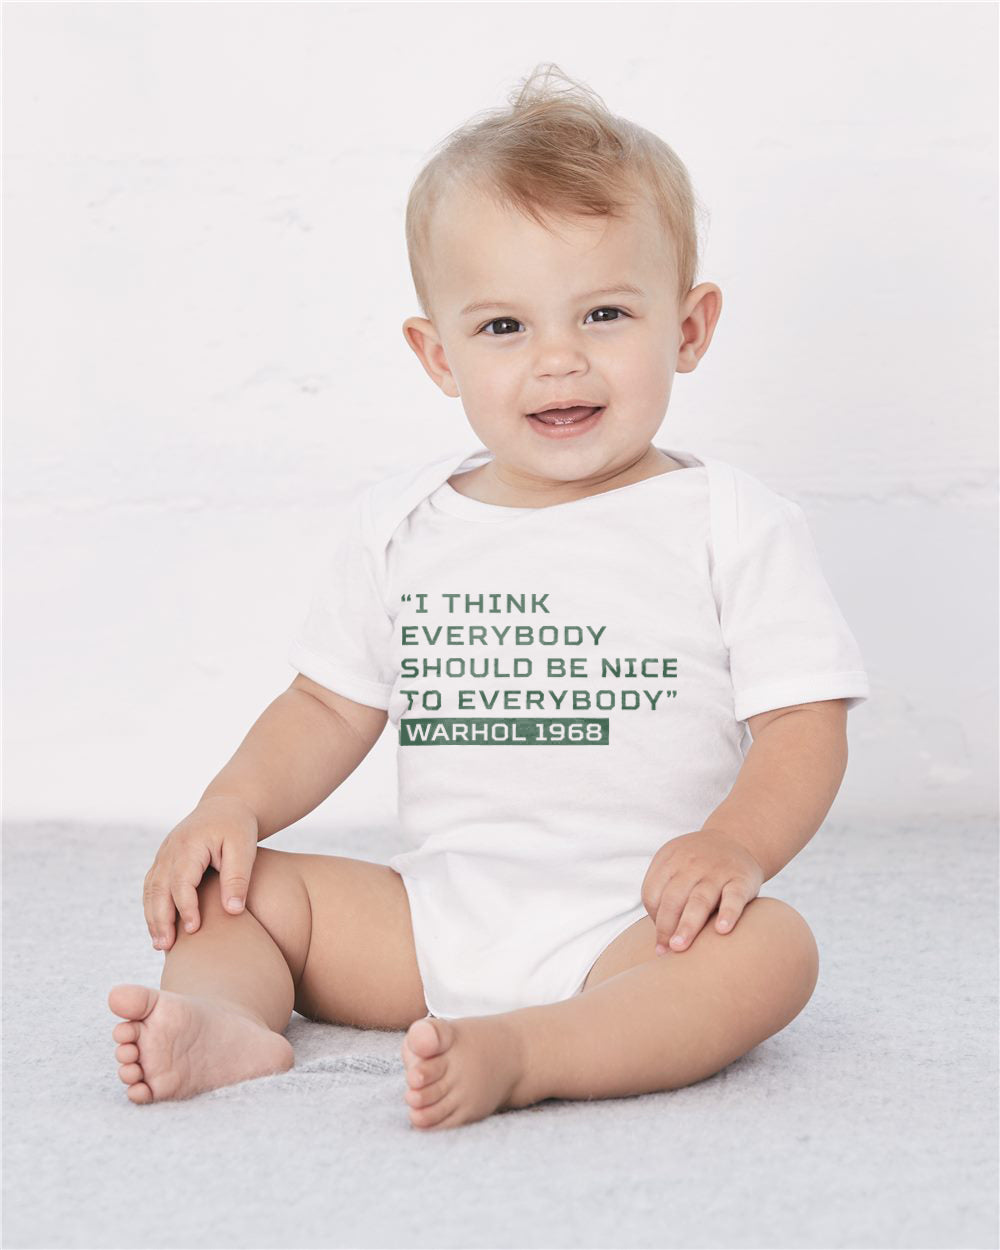 Warhol Everybody Should Be Nice Baby Cozy Graphic Tee Onesie in White